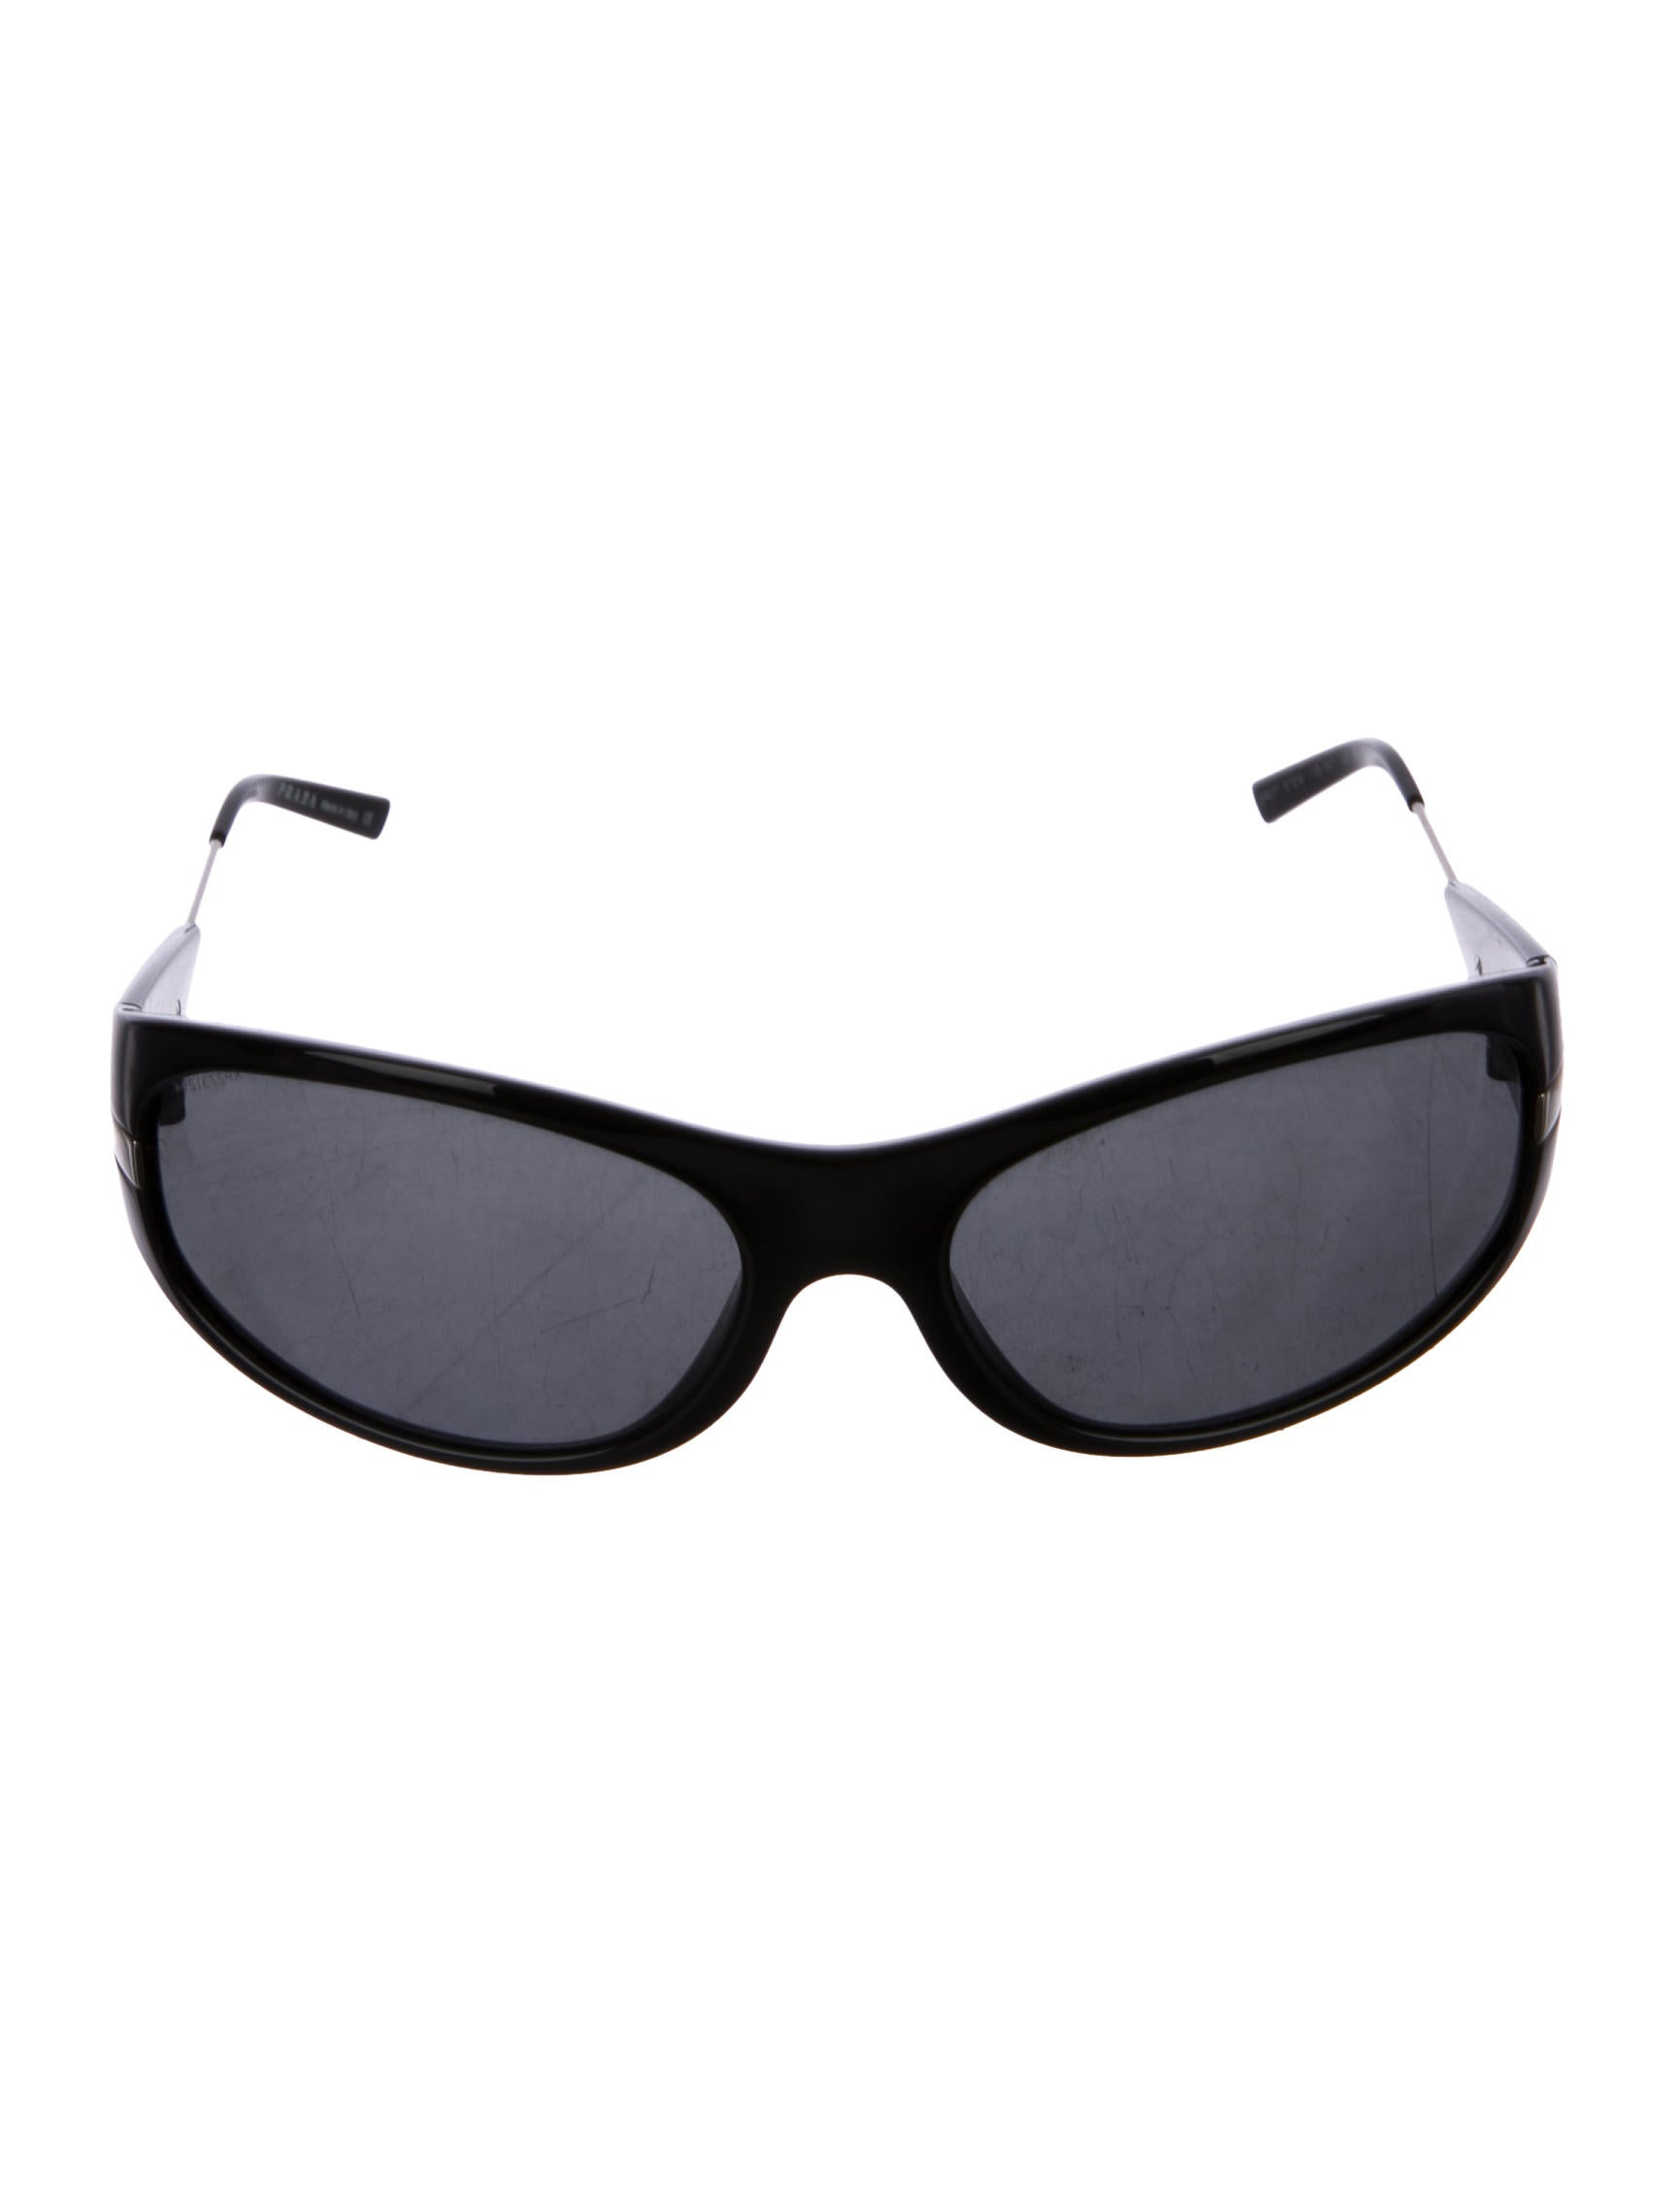 ae993c46faf Prada Acetate Tinted Sunglasses - Accessories - PRA194892